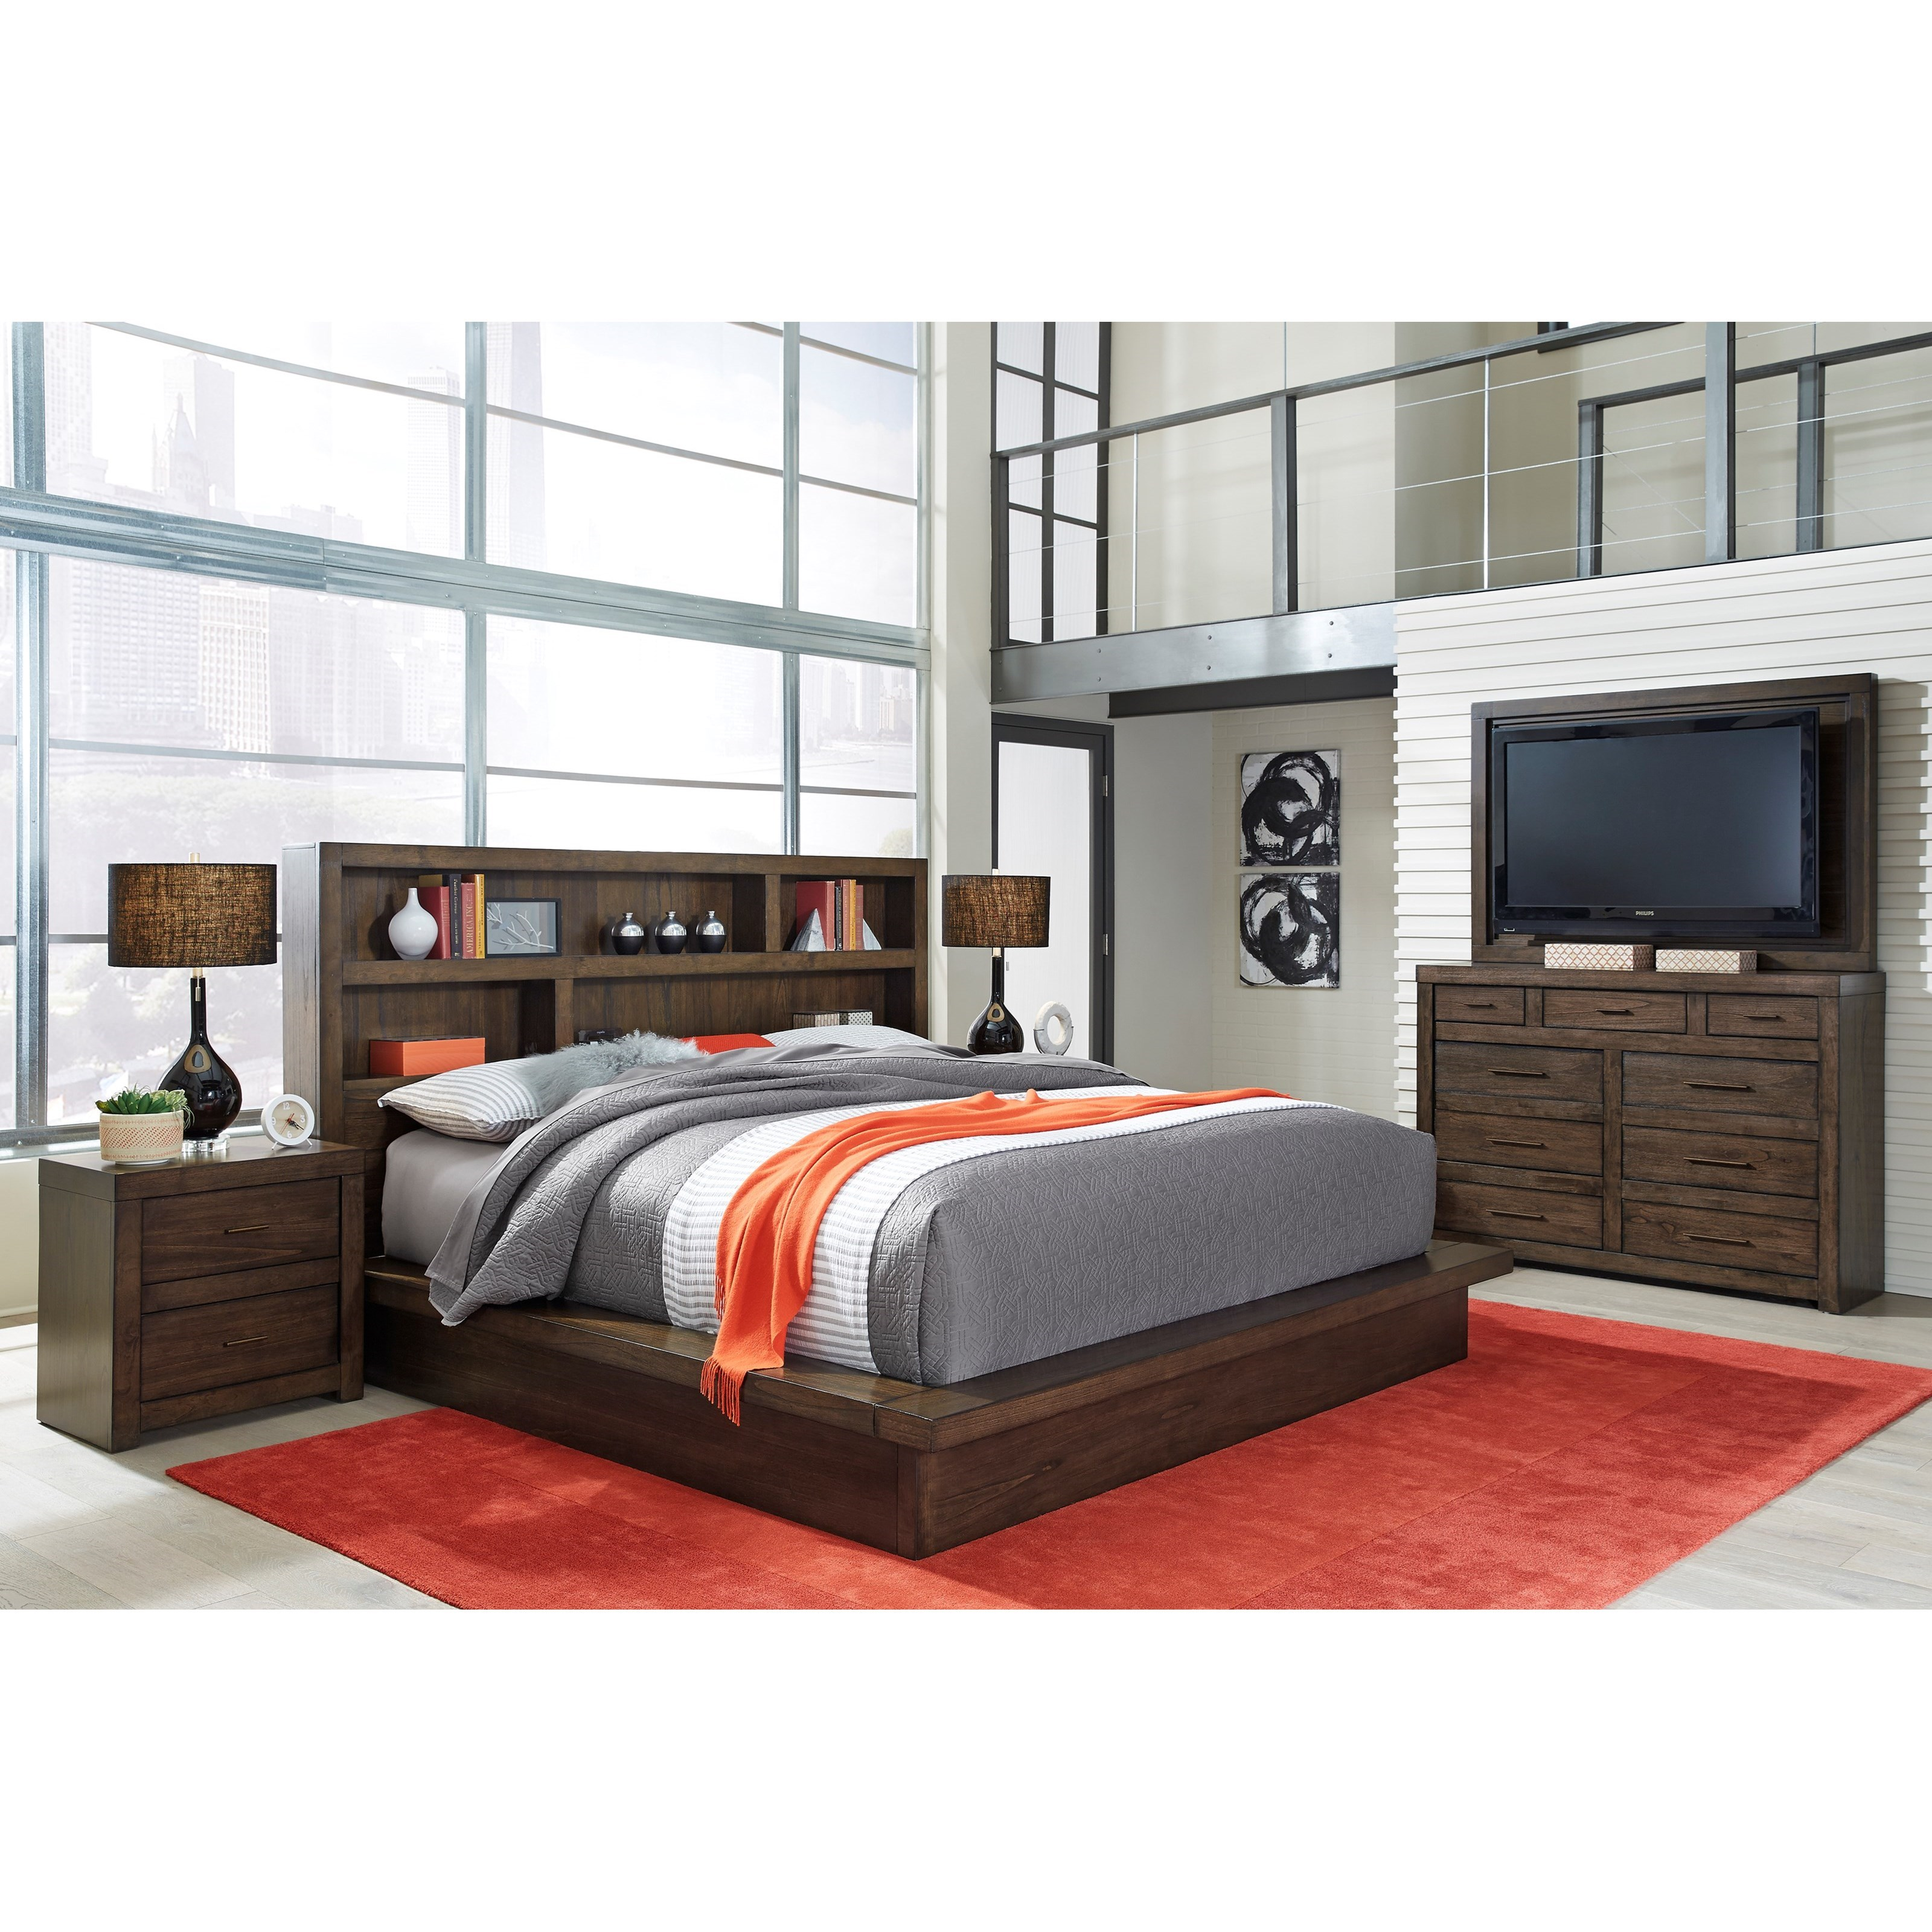 Modern Loft California King Bedroom Group by Aspenhome at Walker's Furniture